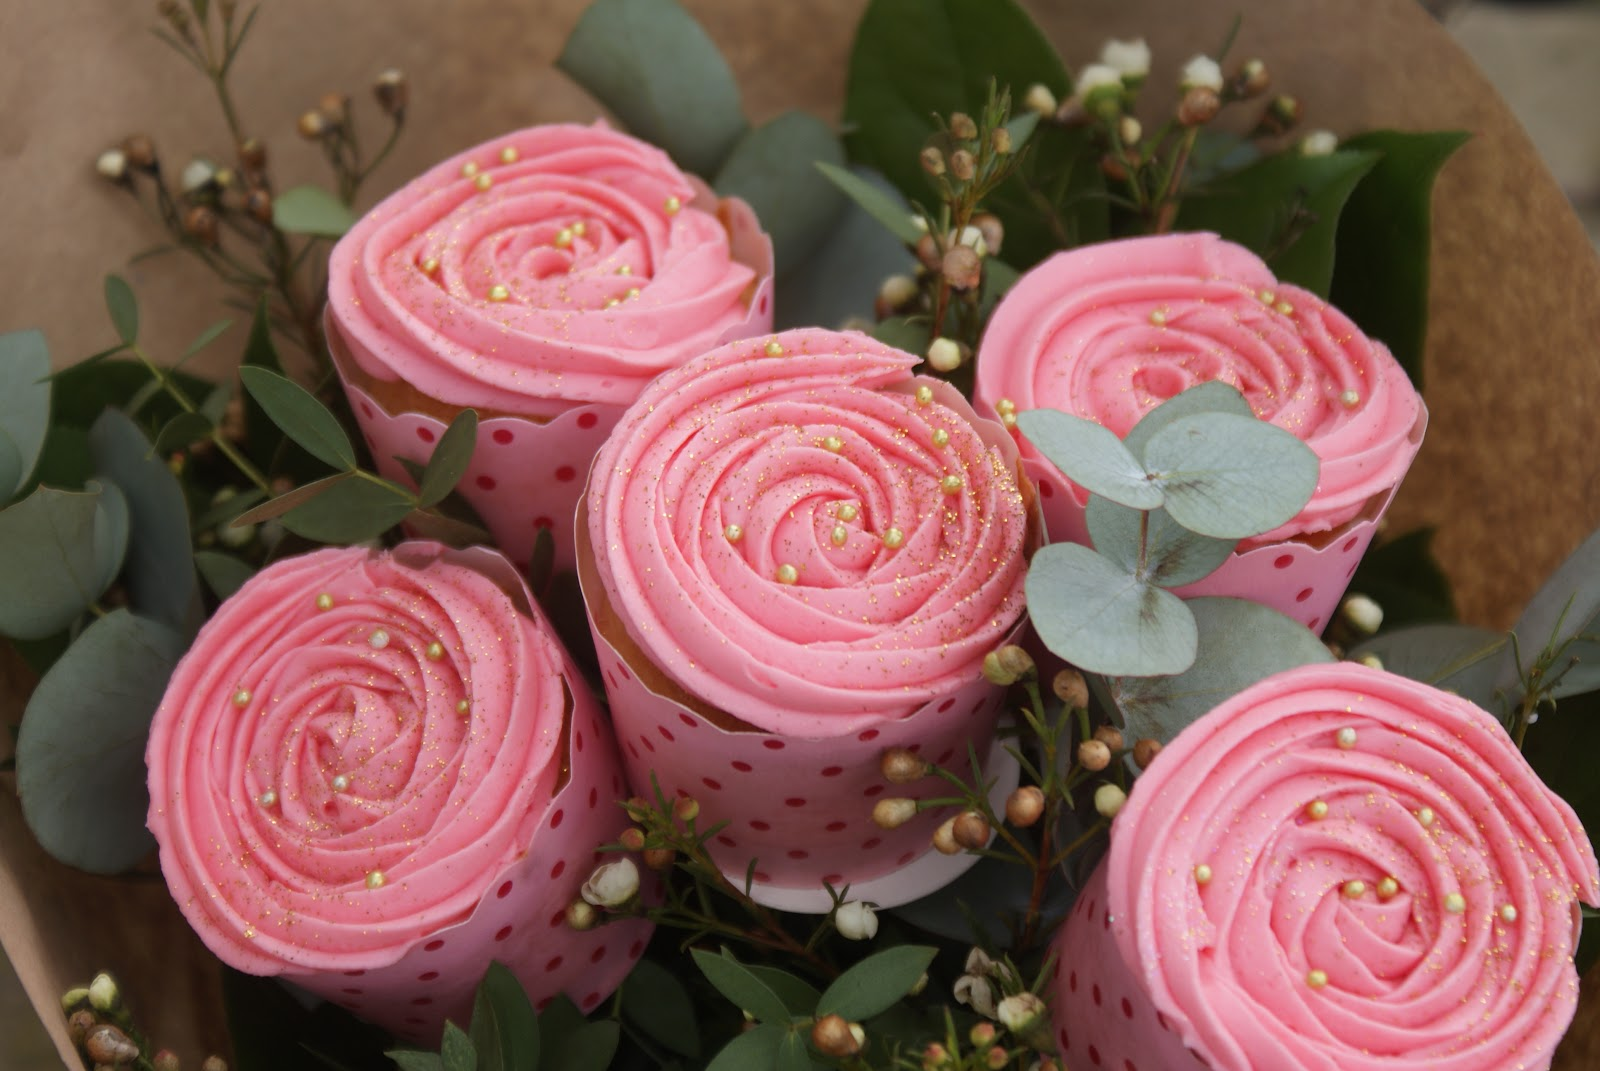 How To Make A Cupcake Bouquet Baking Recipes And Tutorials The